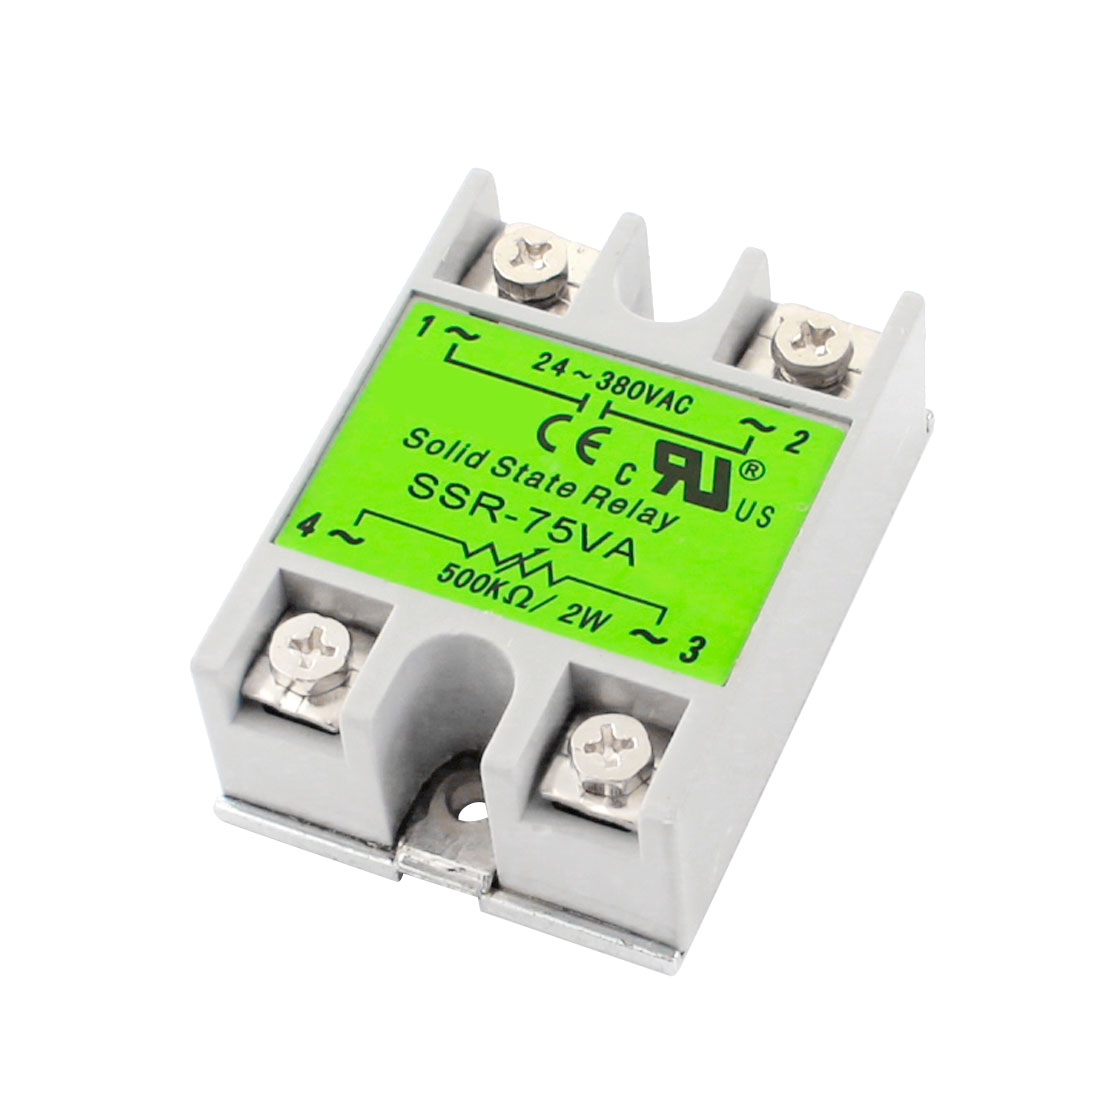 SSR-75VA AC24-380V 500K Ohm/2W 75VA Metal Base Single Phase Resistance Type Adjustable Solid Module State Relay